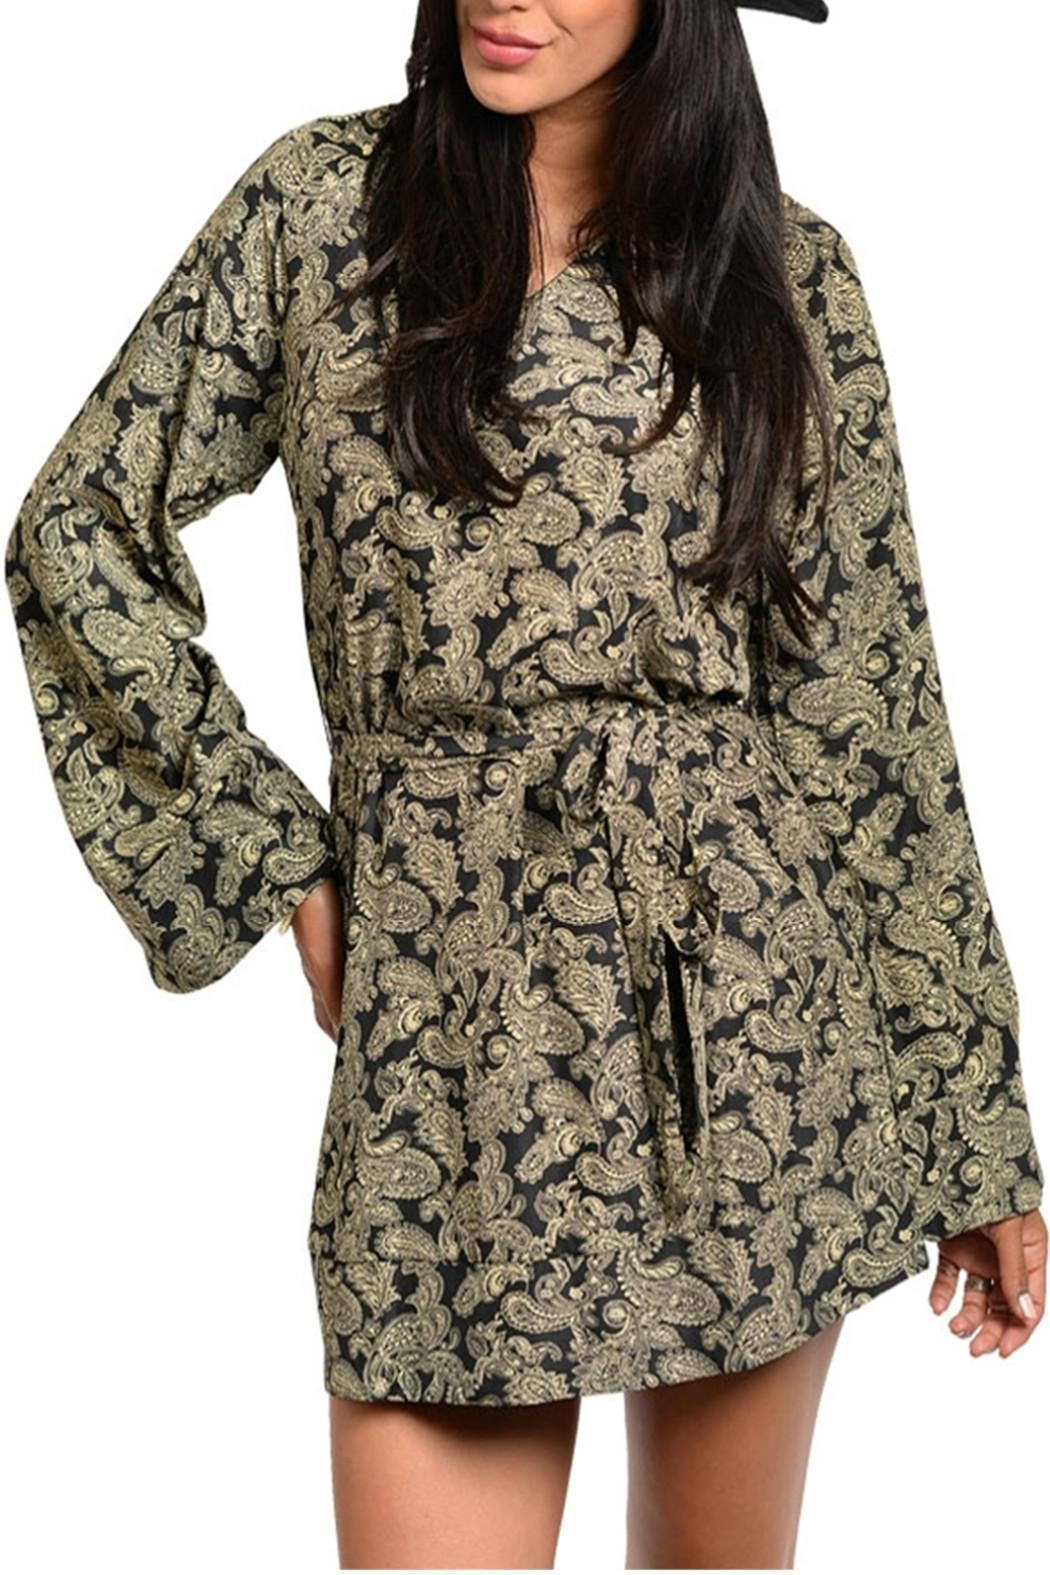 CALS Bell Print Dress - Front Cropped Image